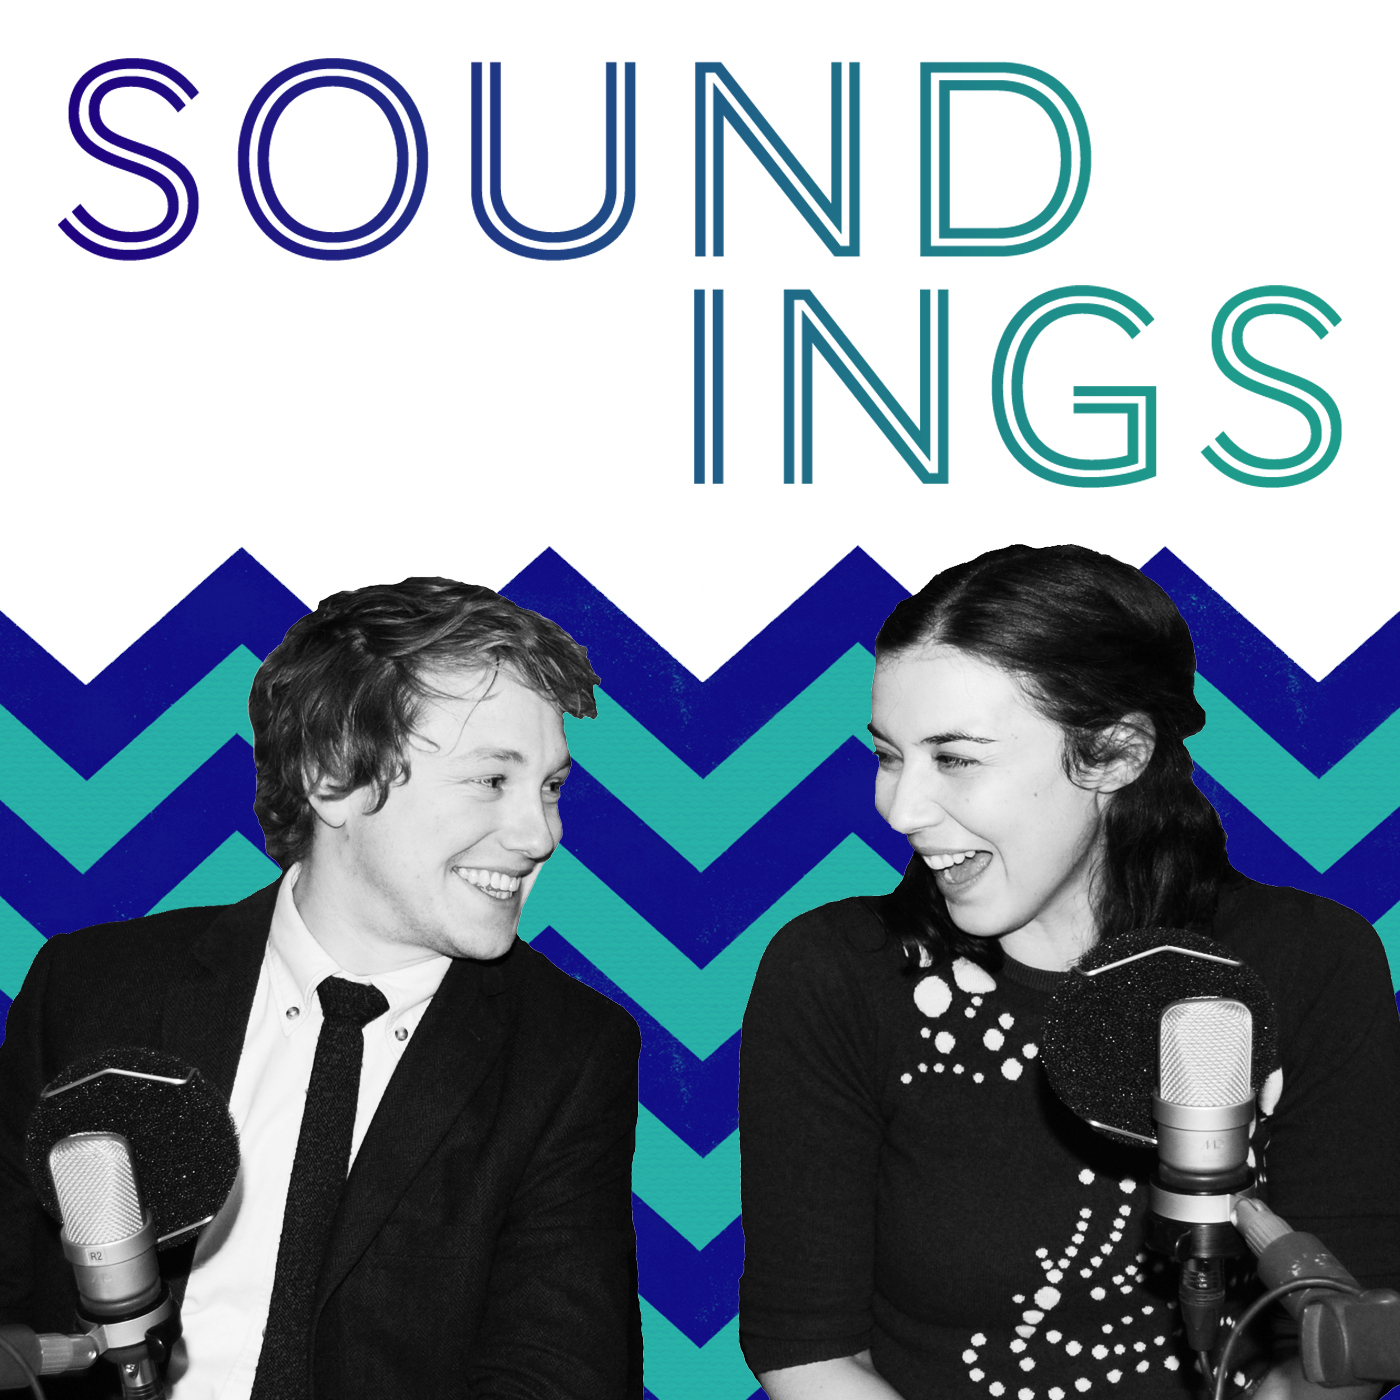 Soundings S1 E11: Wes Anderson, John Cleese, Ghost Stories, St Vincent & The Gloaming